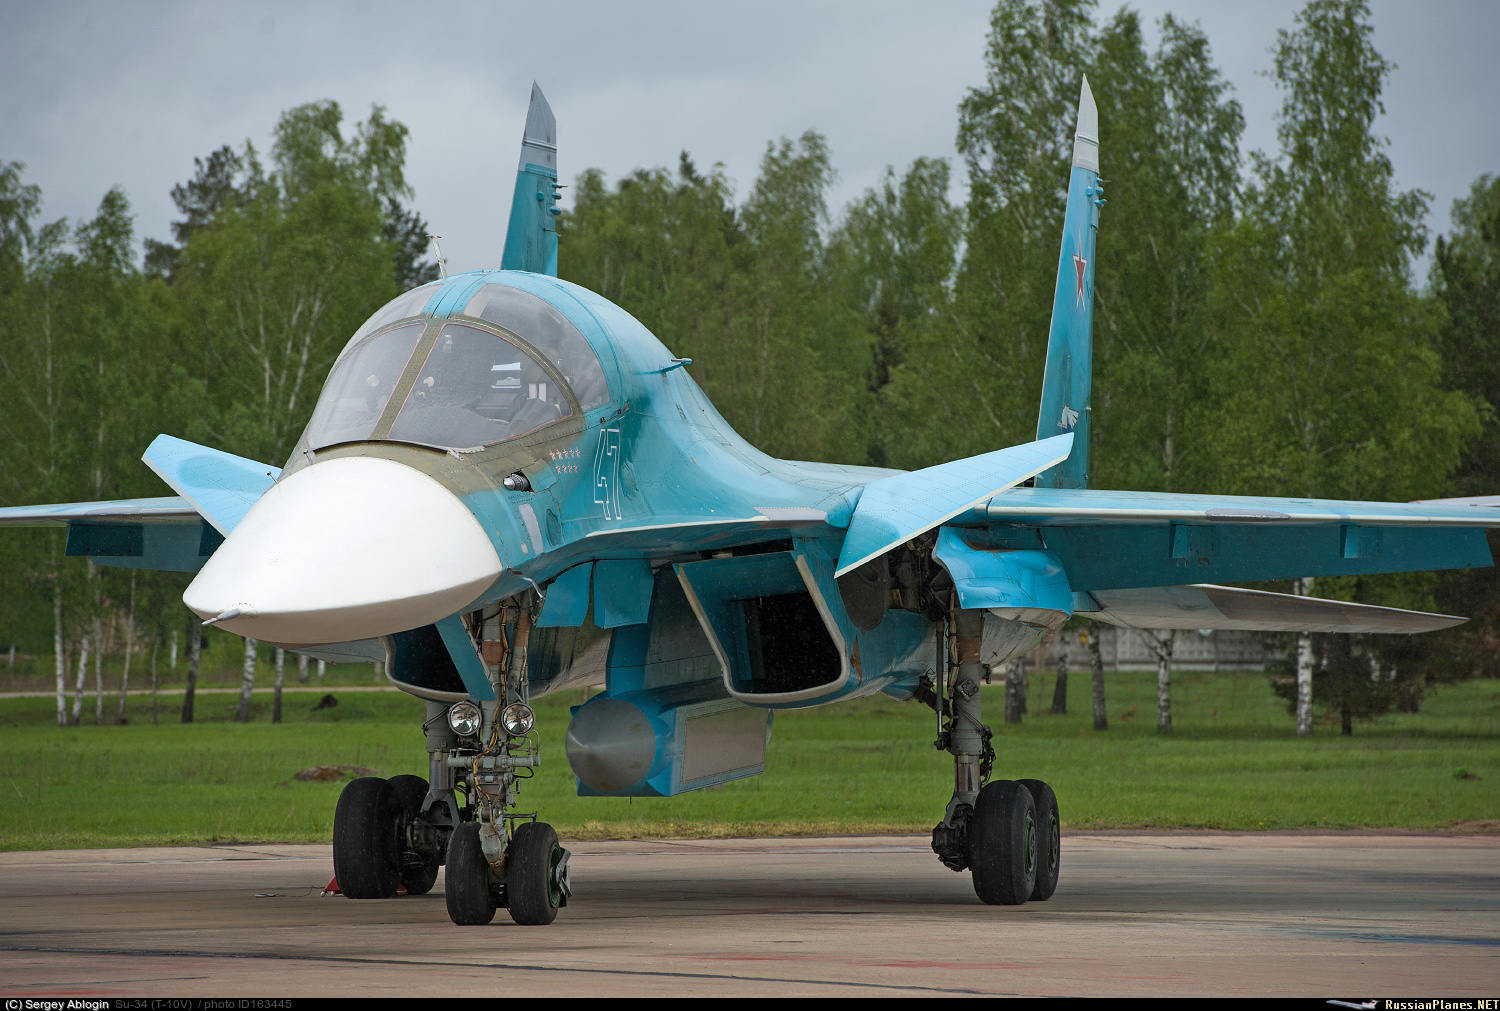 http://russianplanes.net/images/to164000/163445.jpg